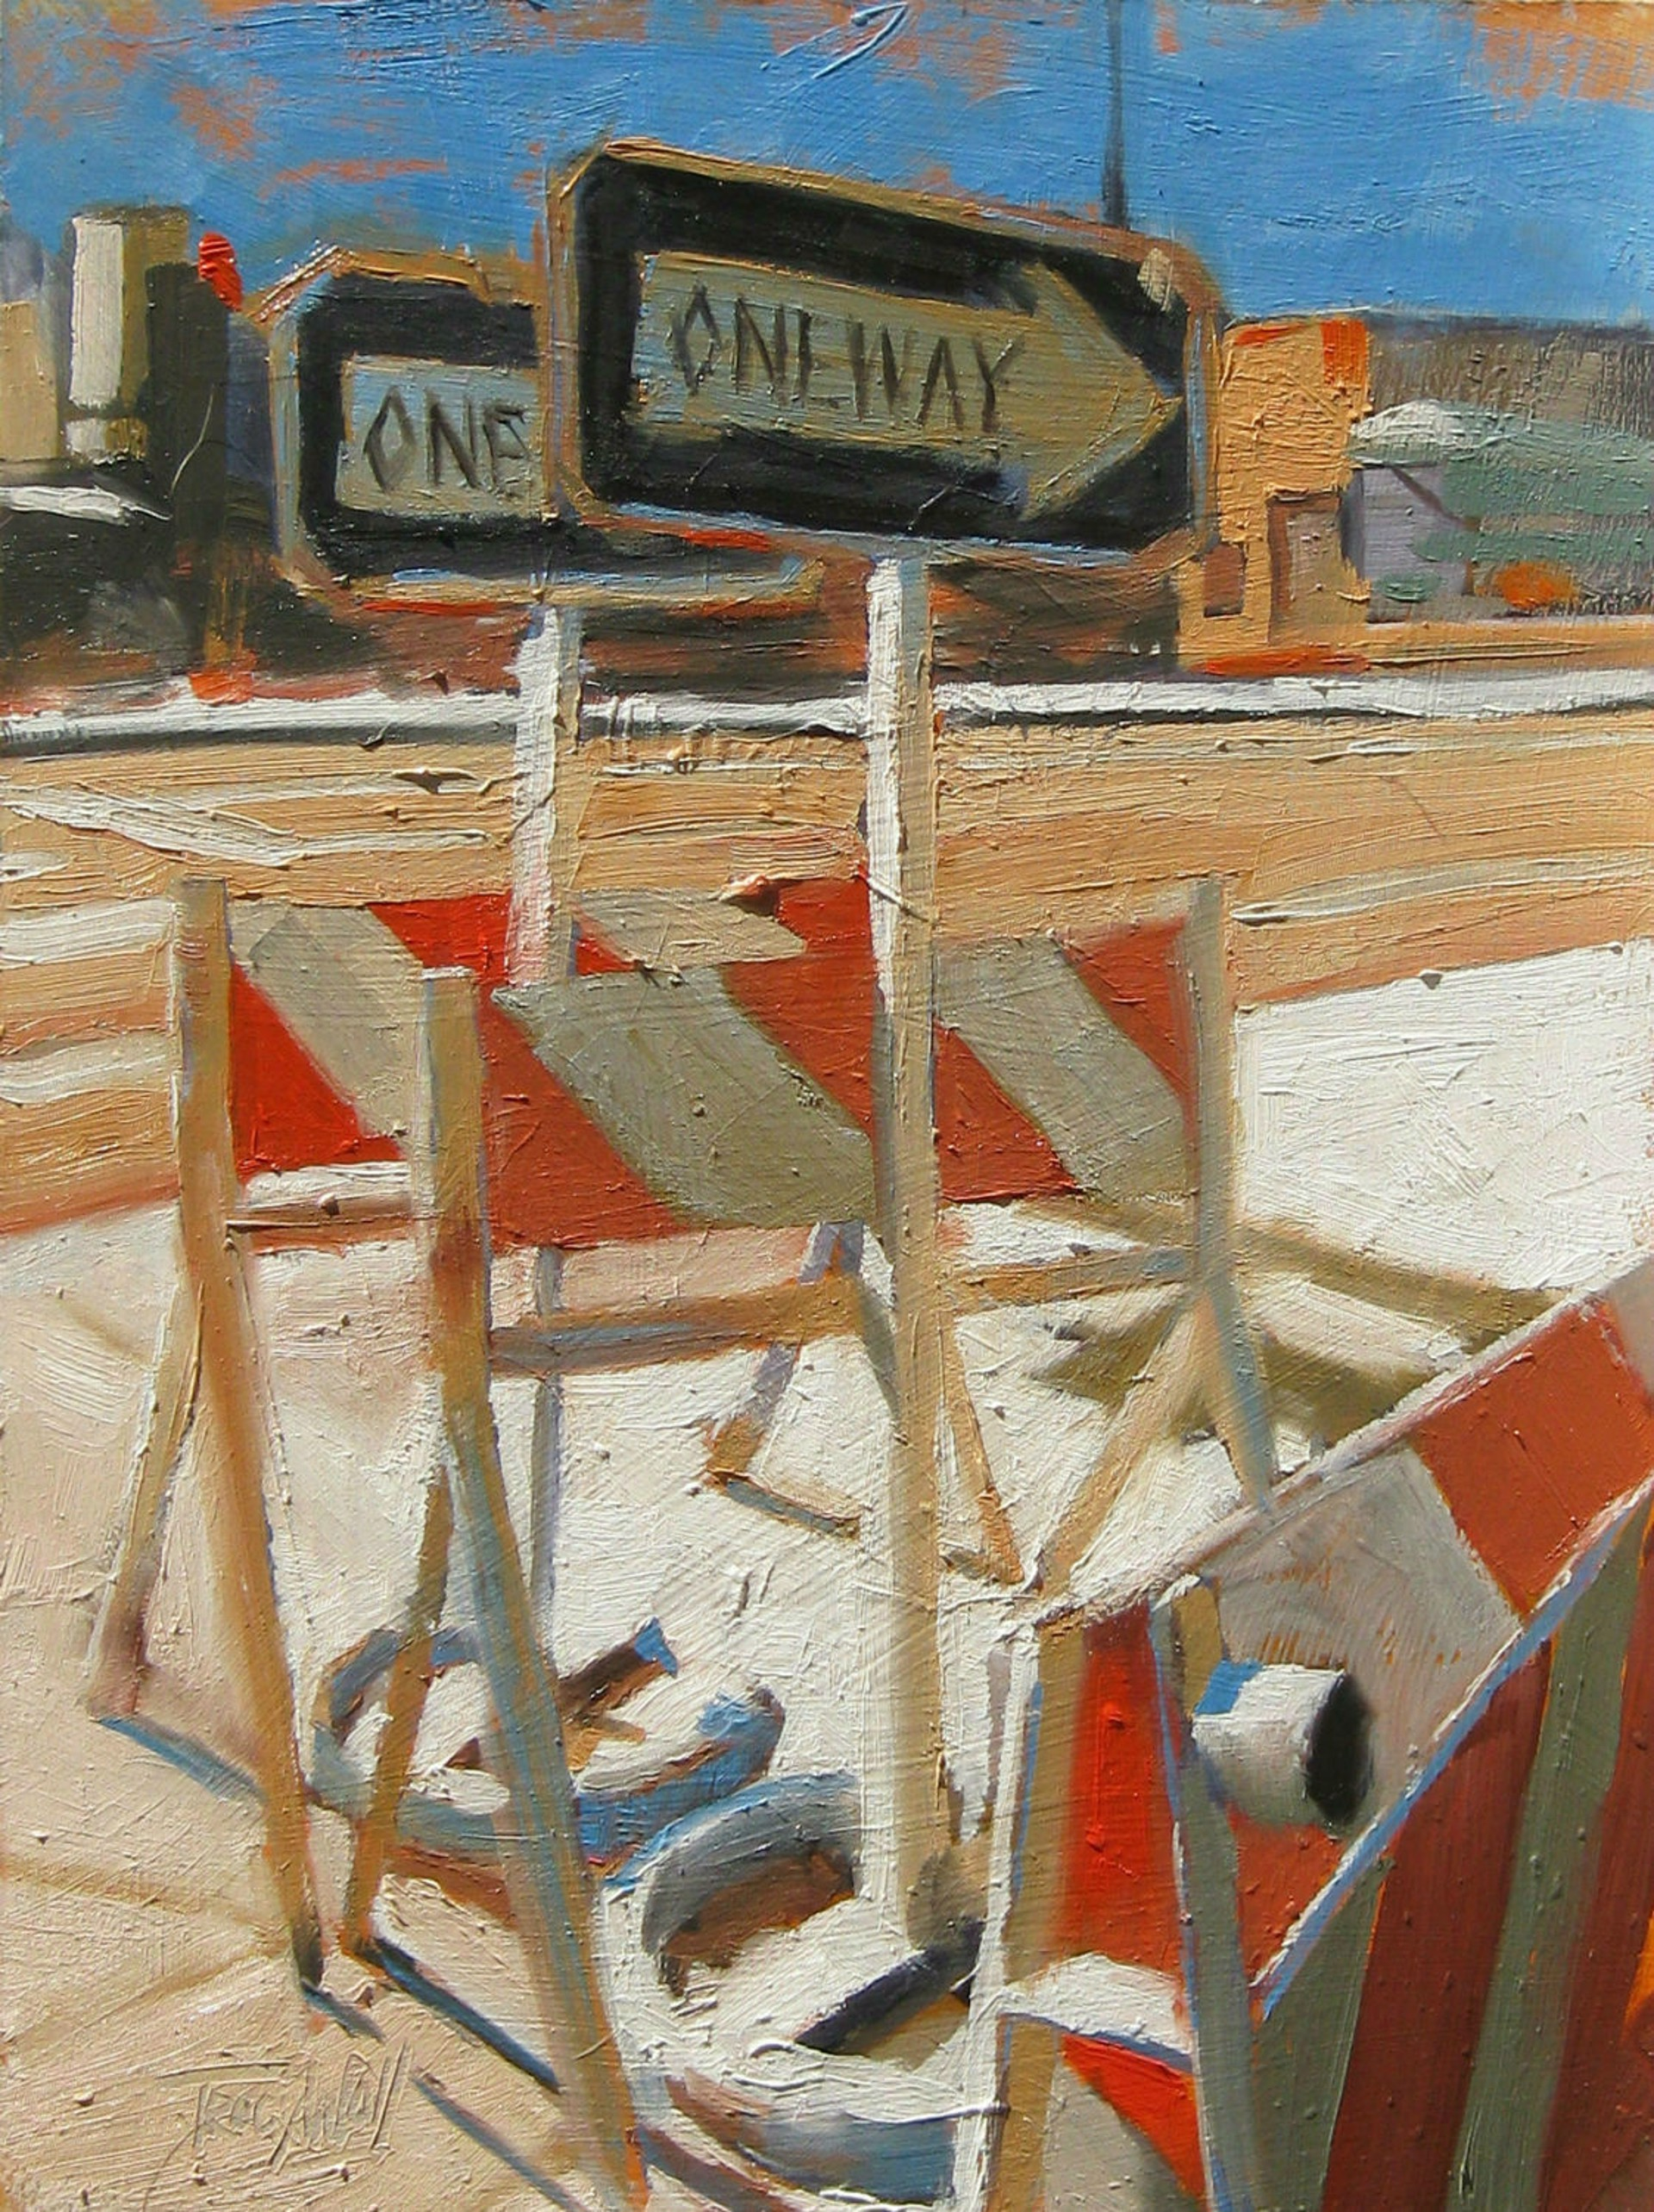 One Way by Tracy Wall